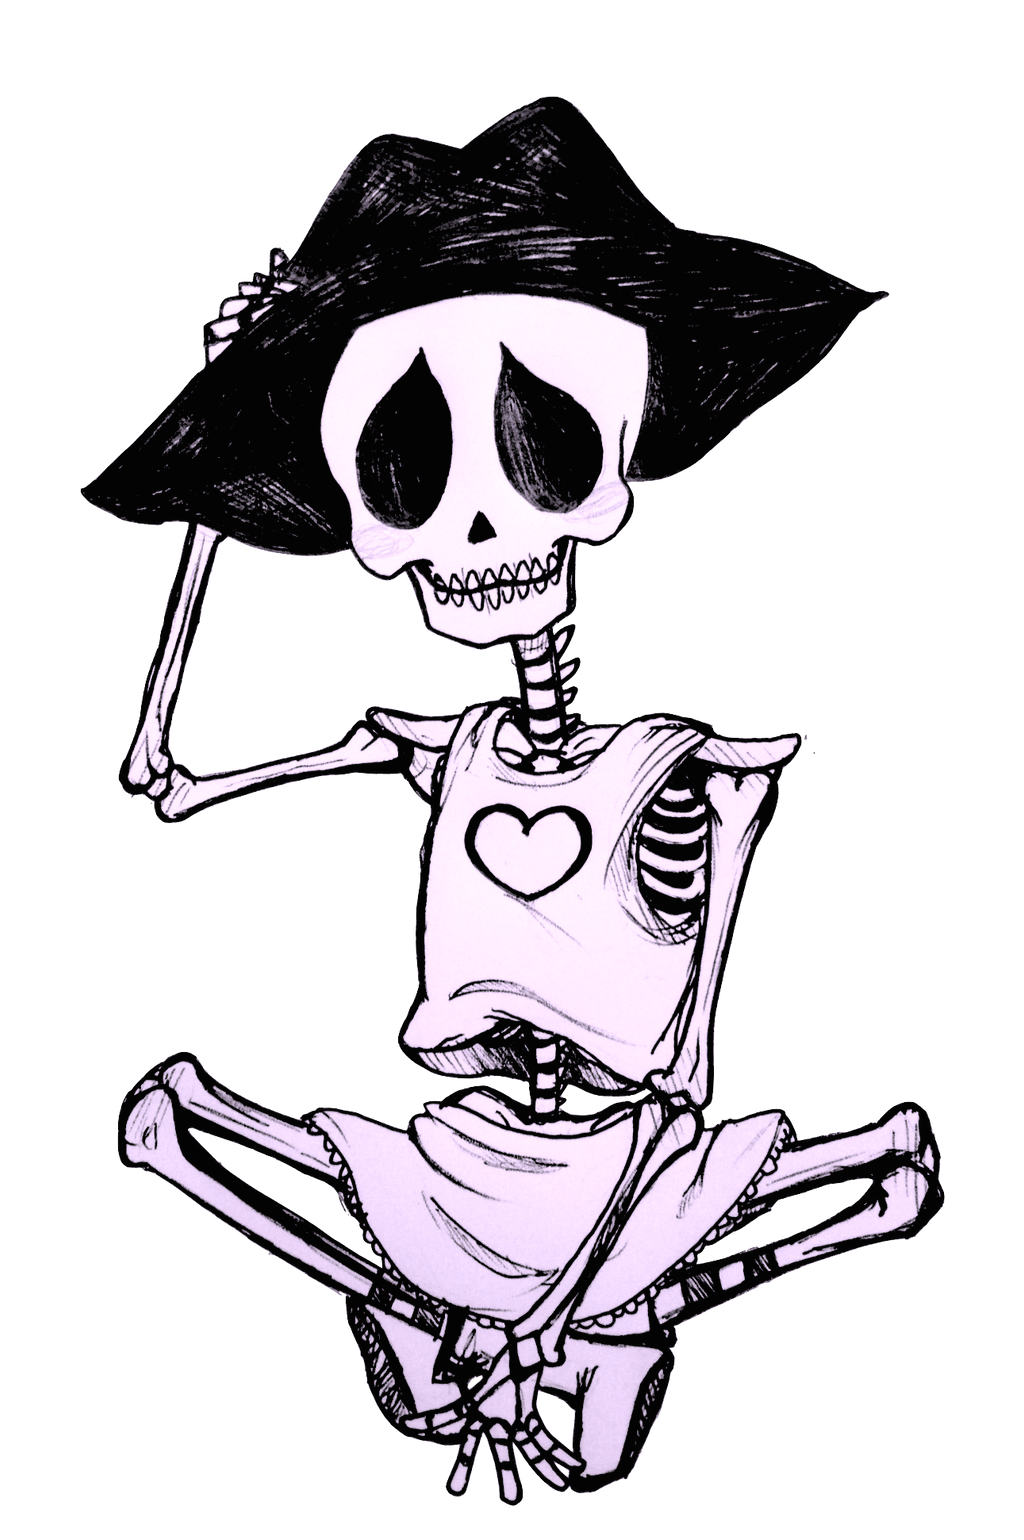 That-Love-Voodoo's Profile Picture